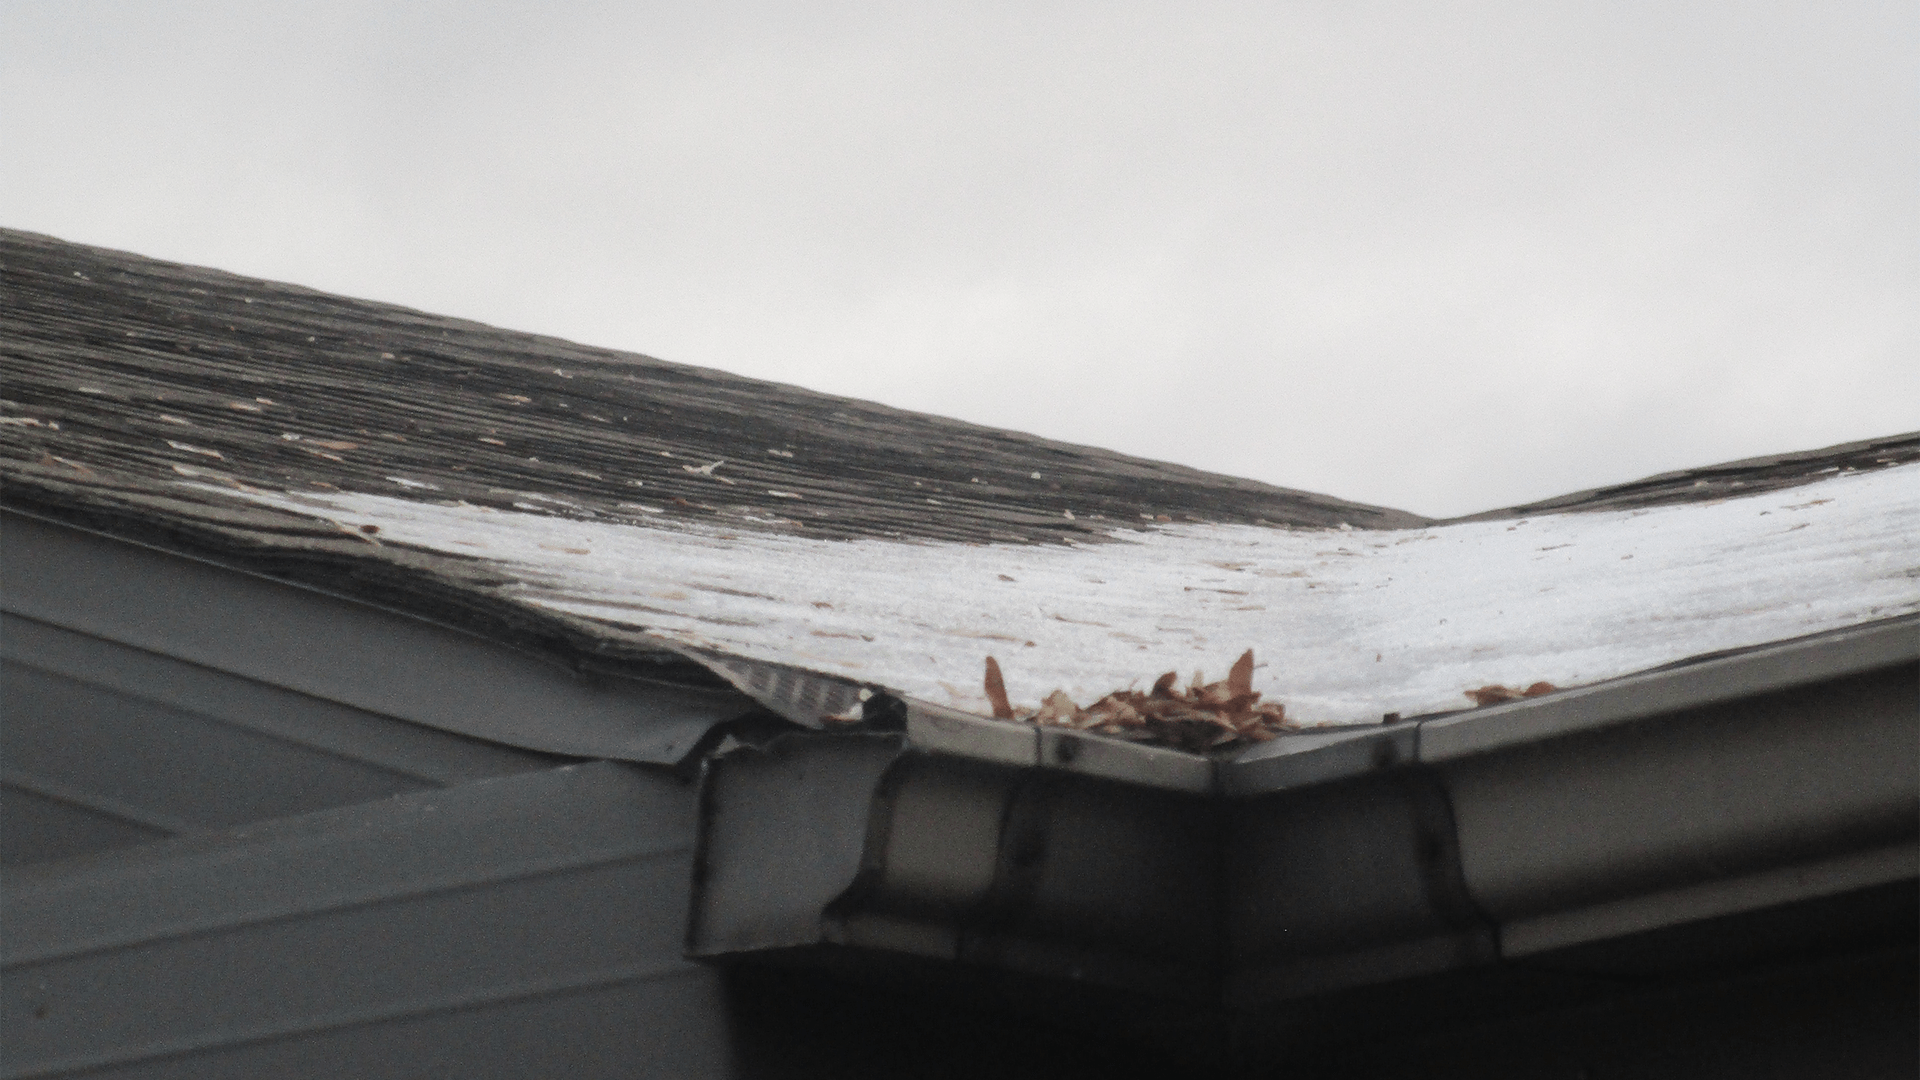 Ice dams on Daniel's roof